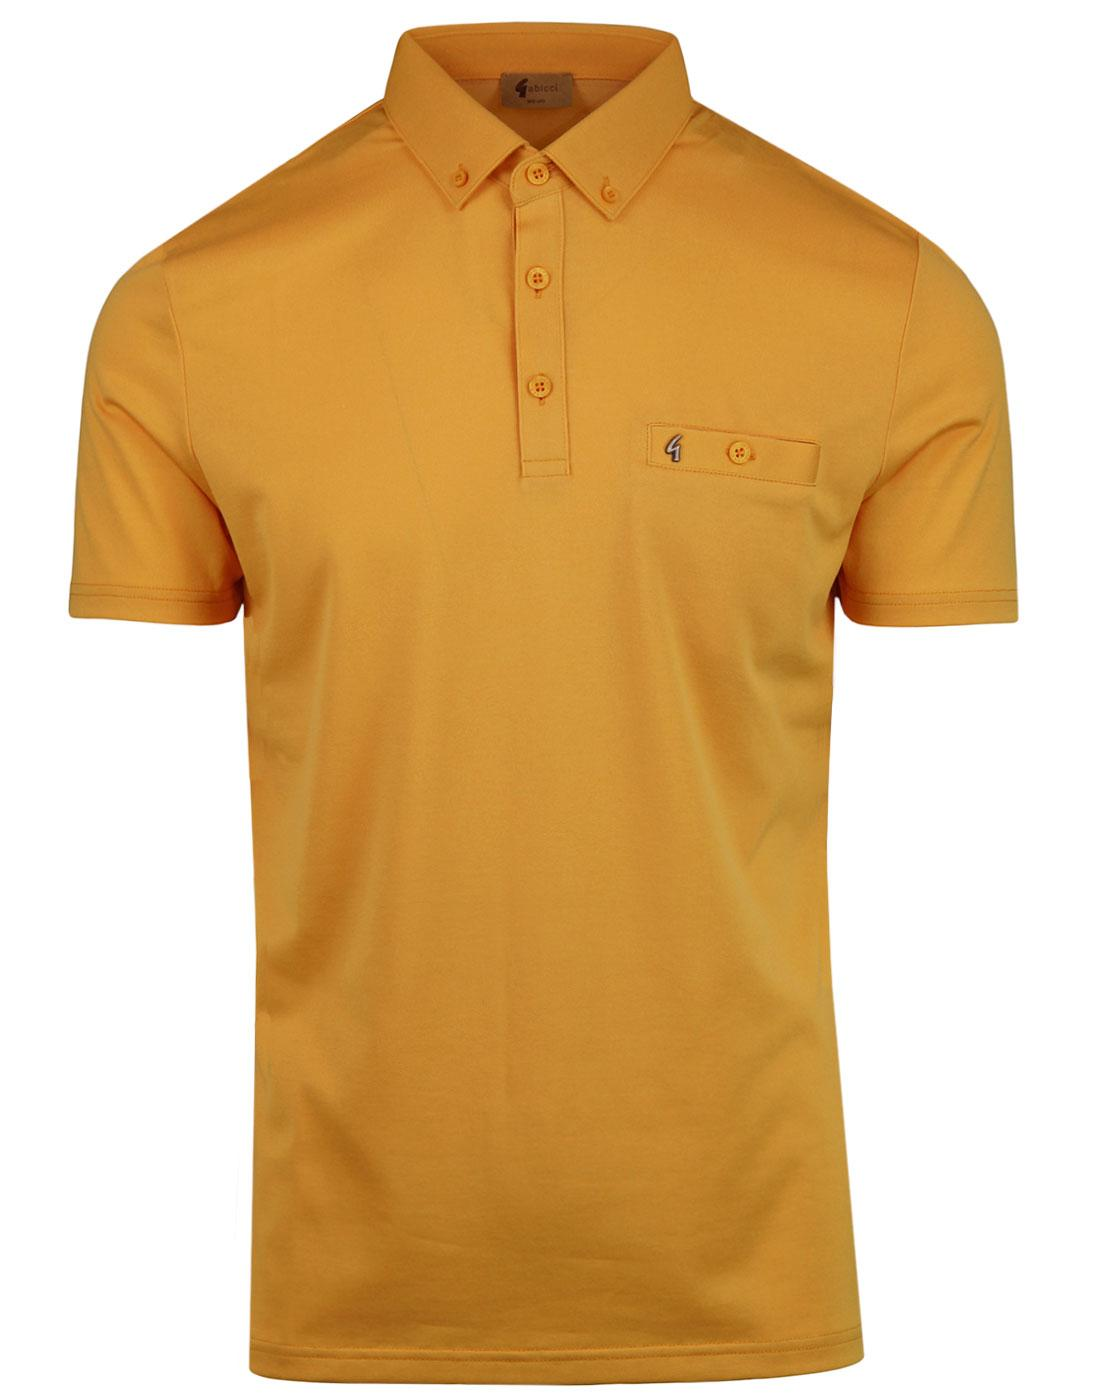 GABICCI VINTAGE Ladro Mod Button Down Polo Top in Butter 03bbfb780